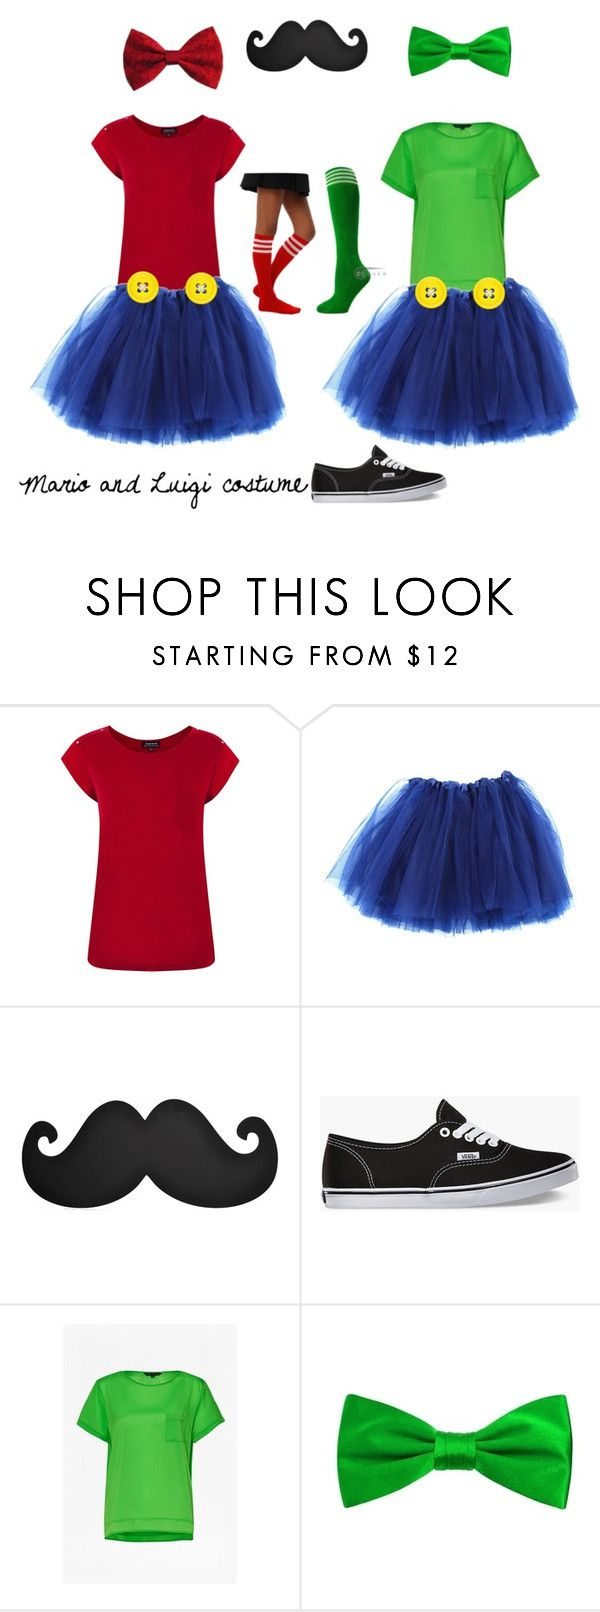 """Mario and Luigi costume"" by npd531 ❤ liked on Polyvore featuring Warehouse, Vans and French Connection"